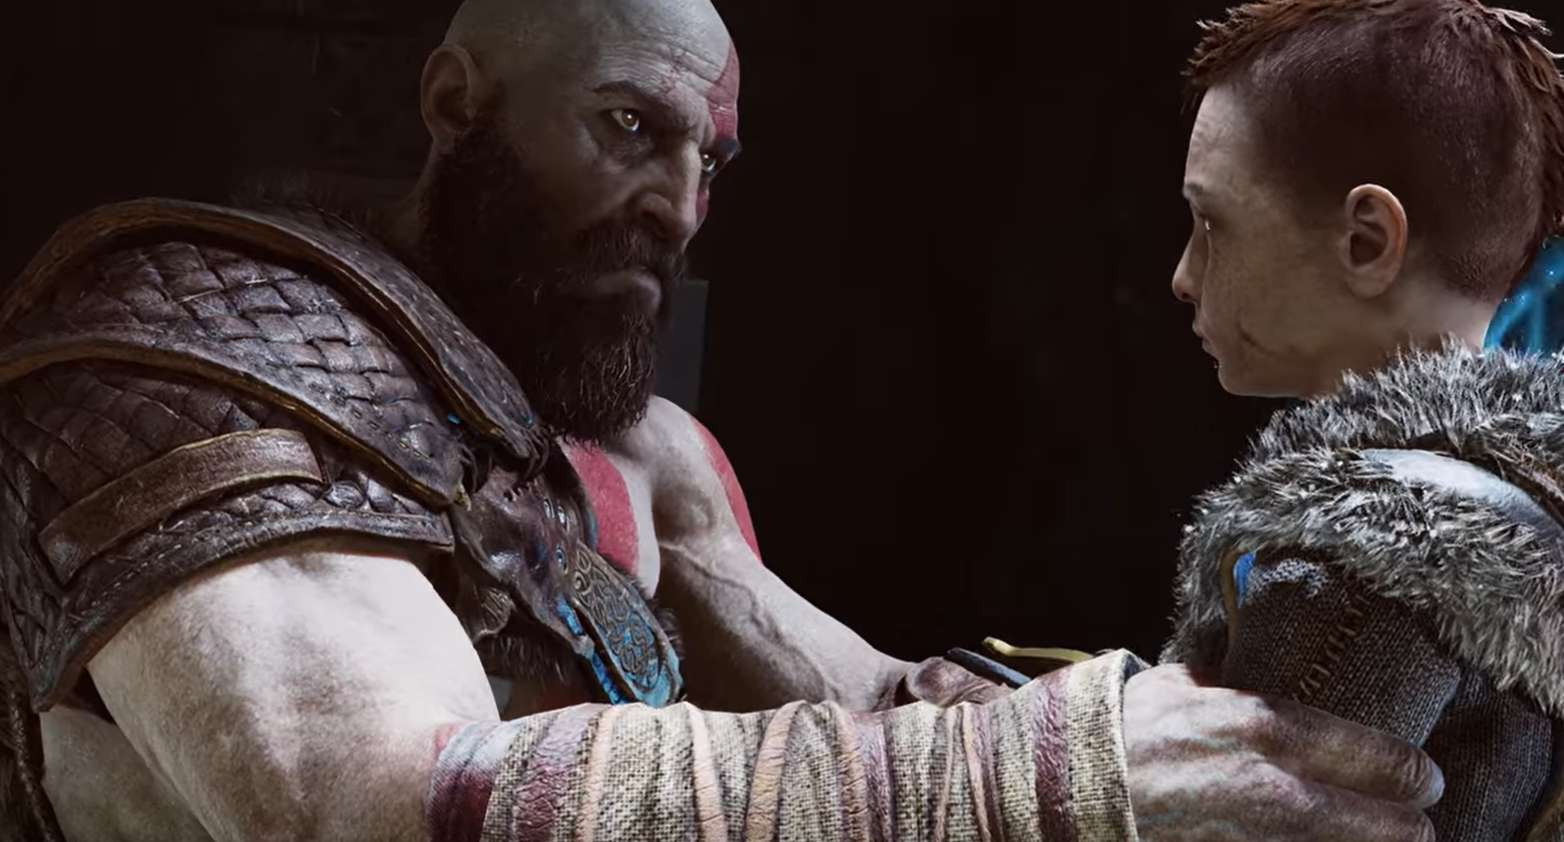 God Of War Director Reveals His Favorite PlayStation Game Of The Decade, And It Isn't God Of War